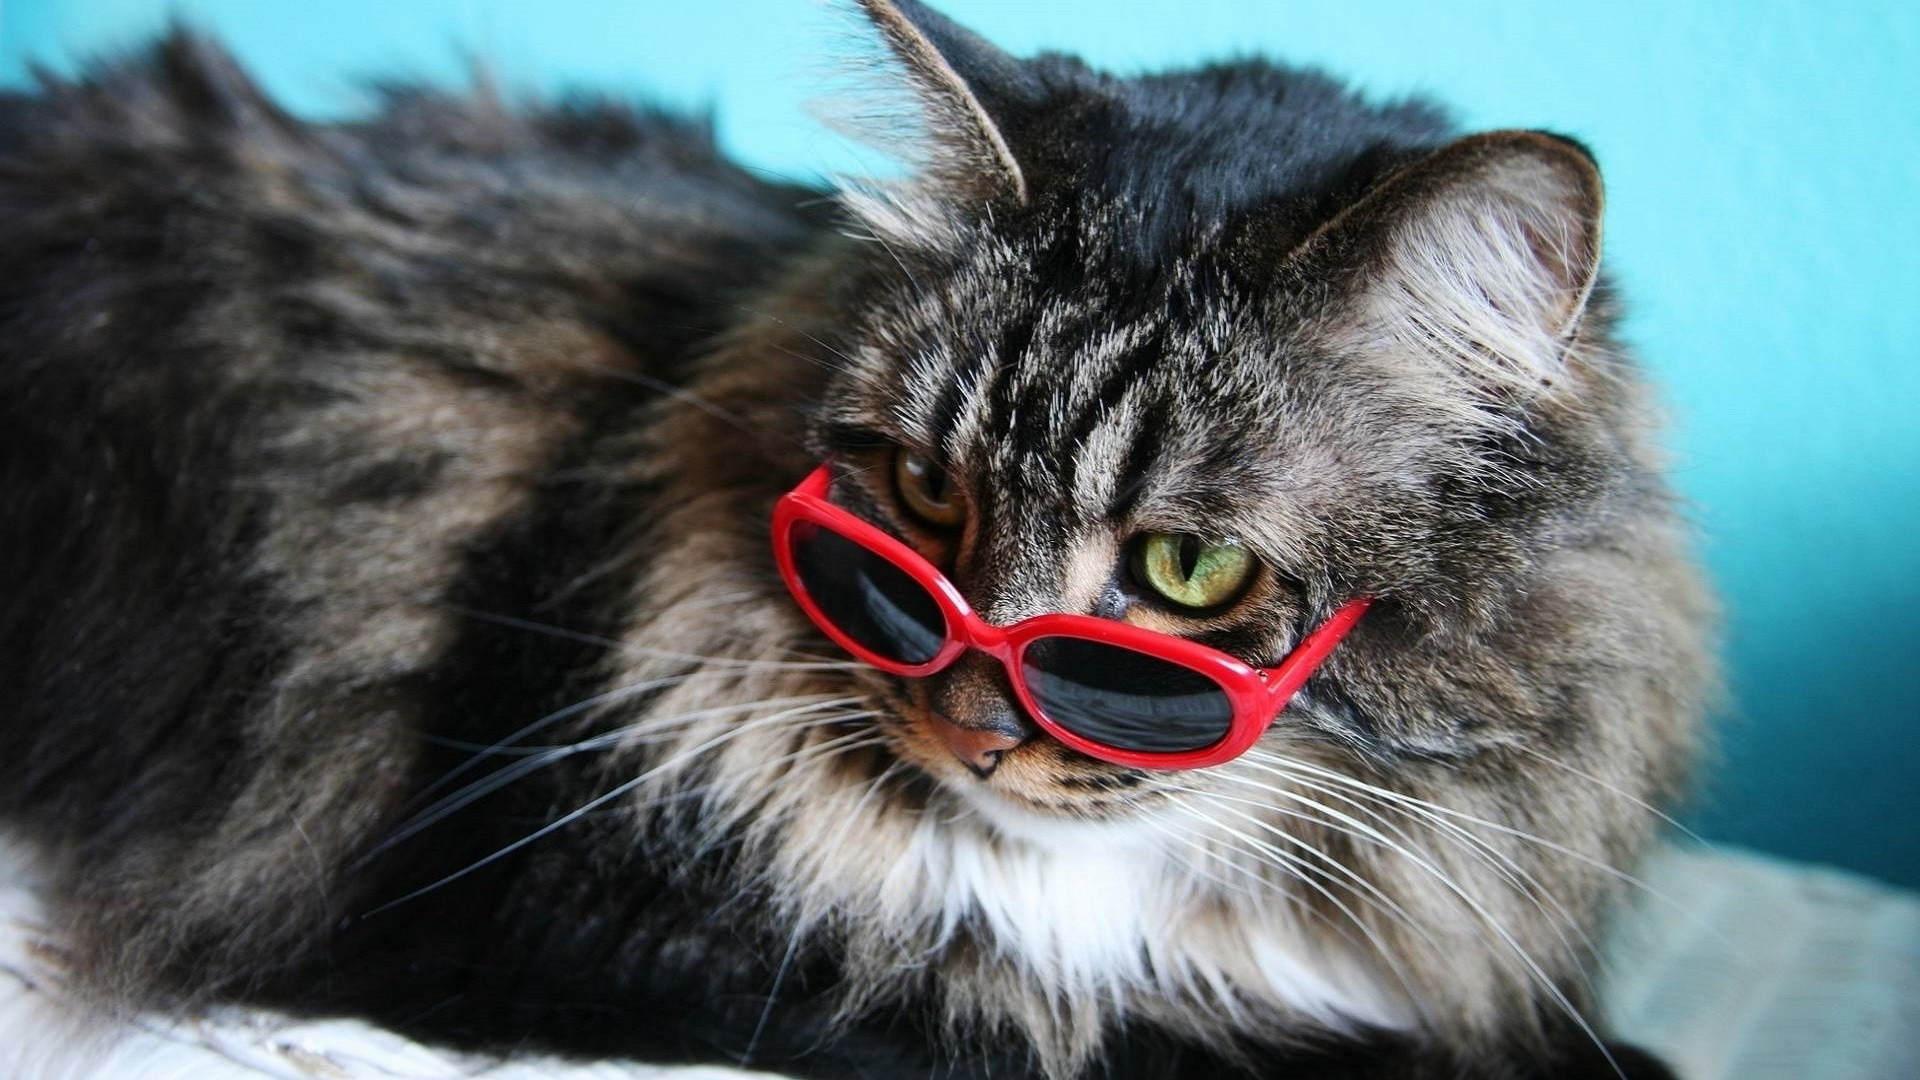 Cat With Glasses wallpaper for computer